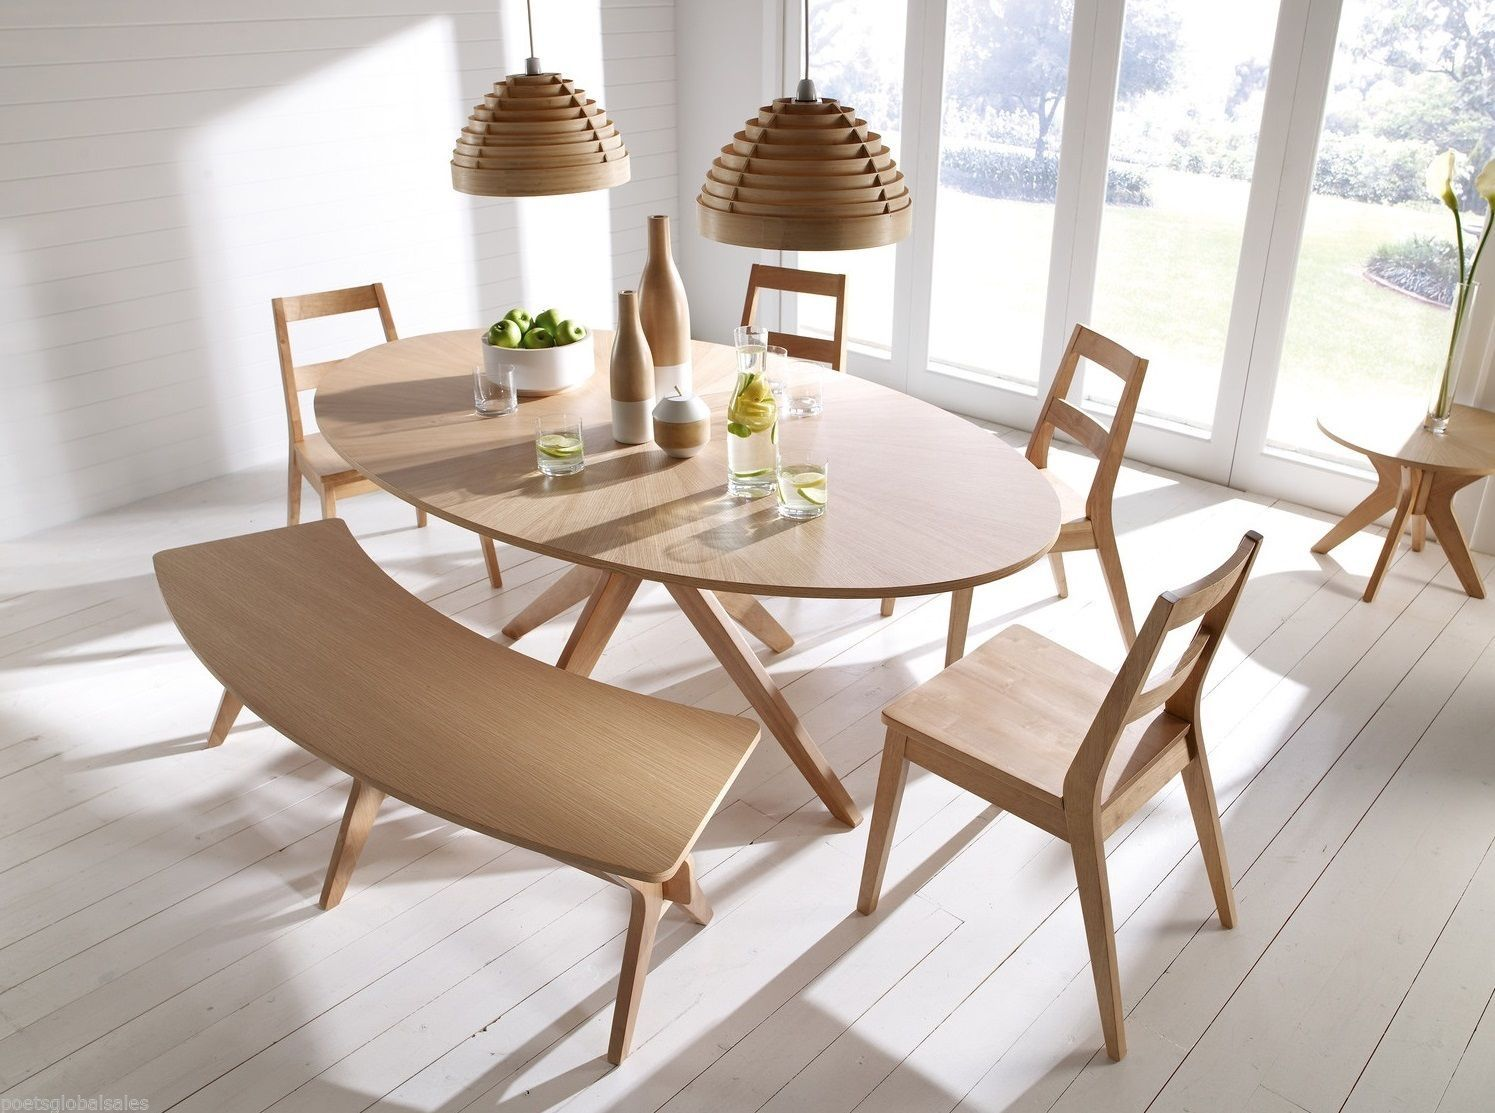 Wooden Dining Table Oak Kitchen Living Room Wood Rustic Oval